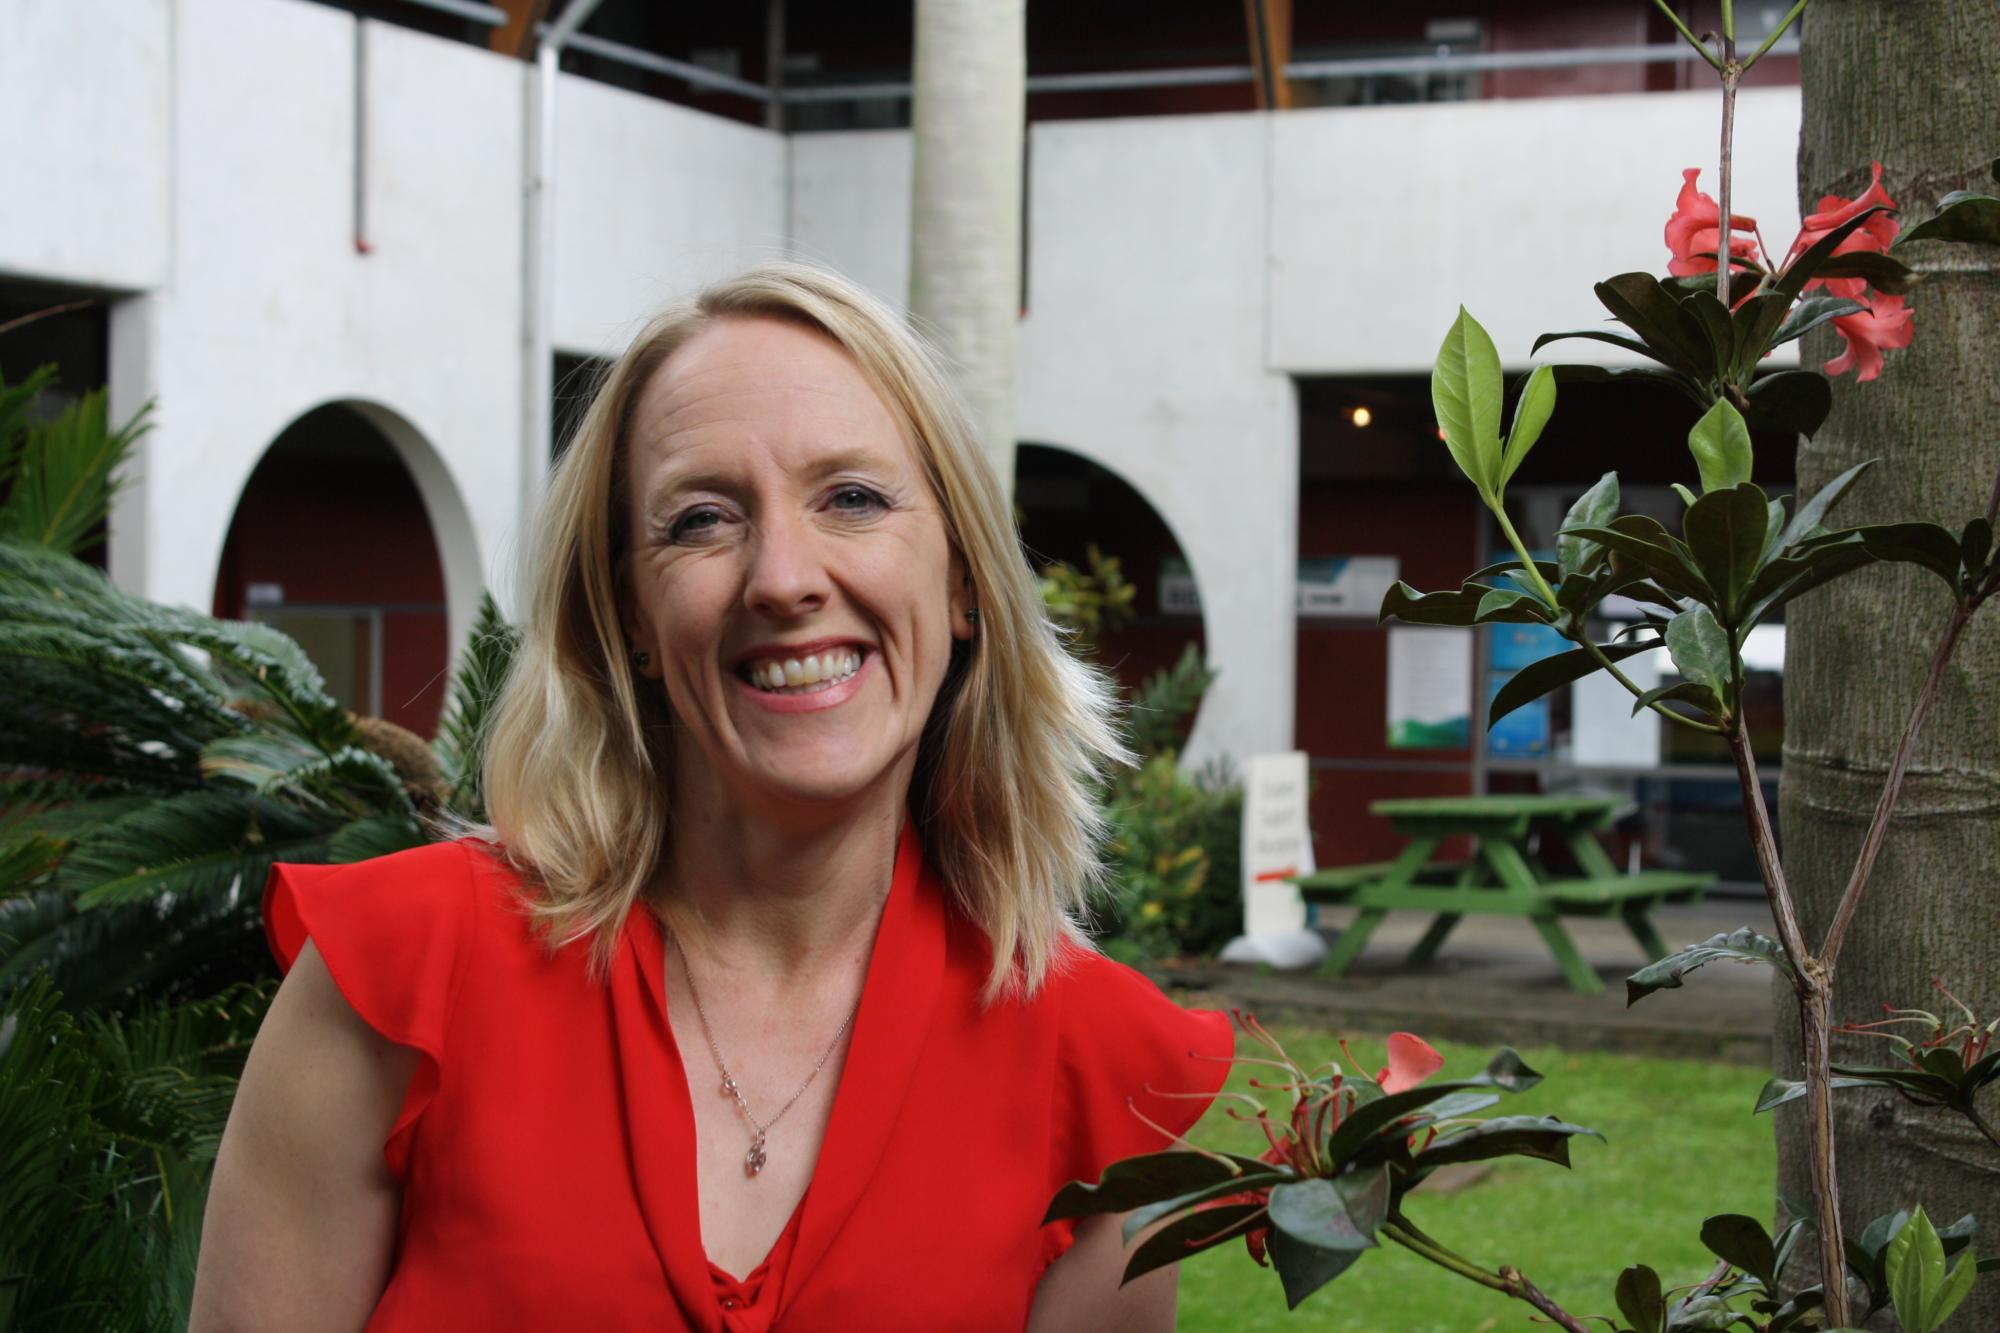 Abestos research team at Unitec is led by Terri-Ann Berry Senior Lecturer in Civil Engineering at Unitec